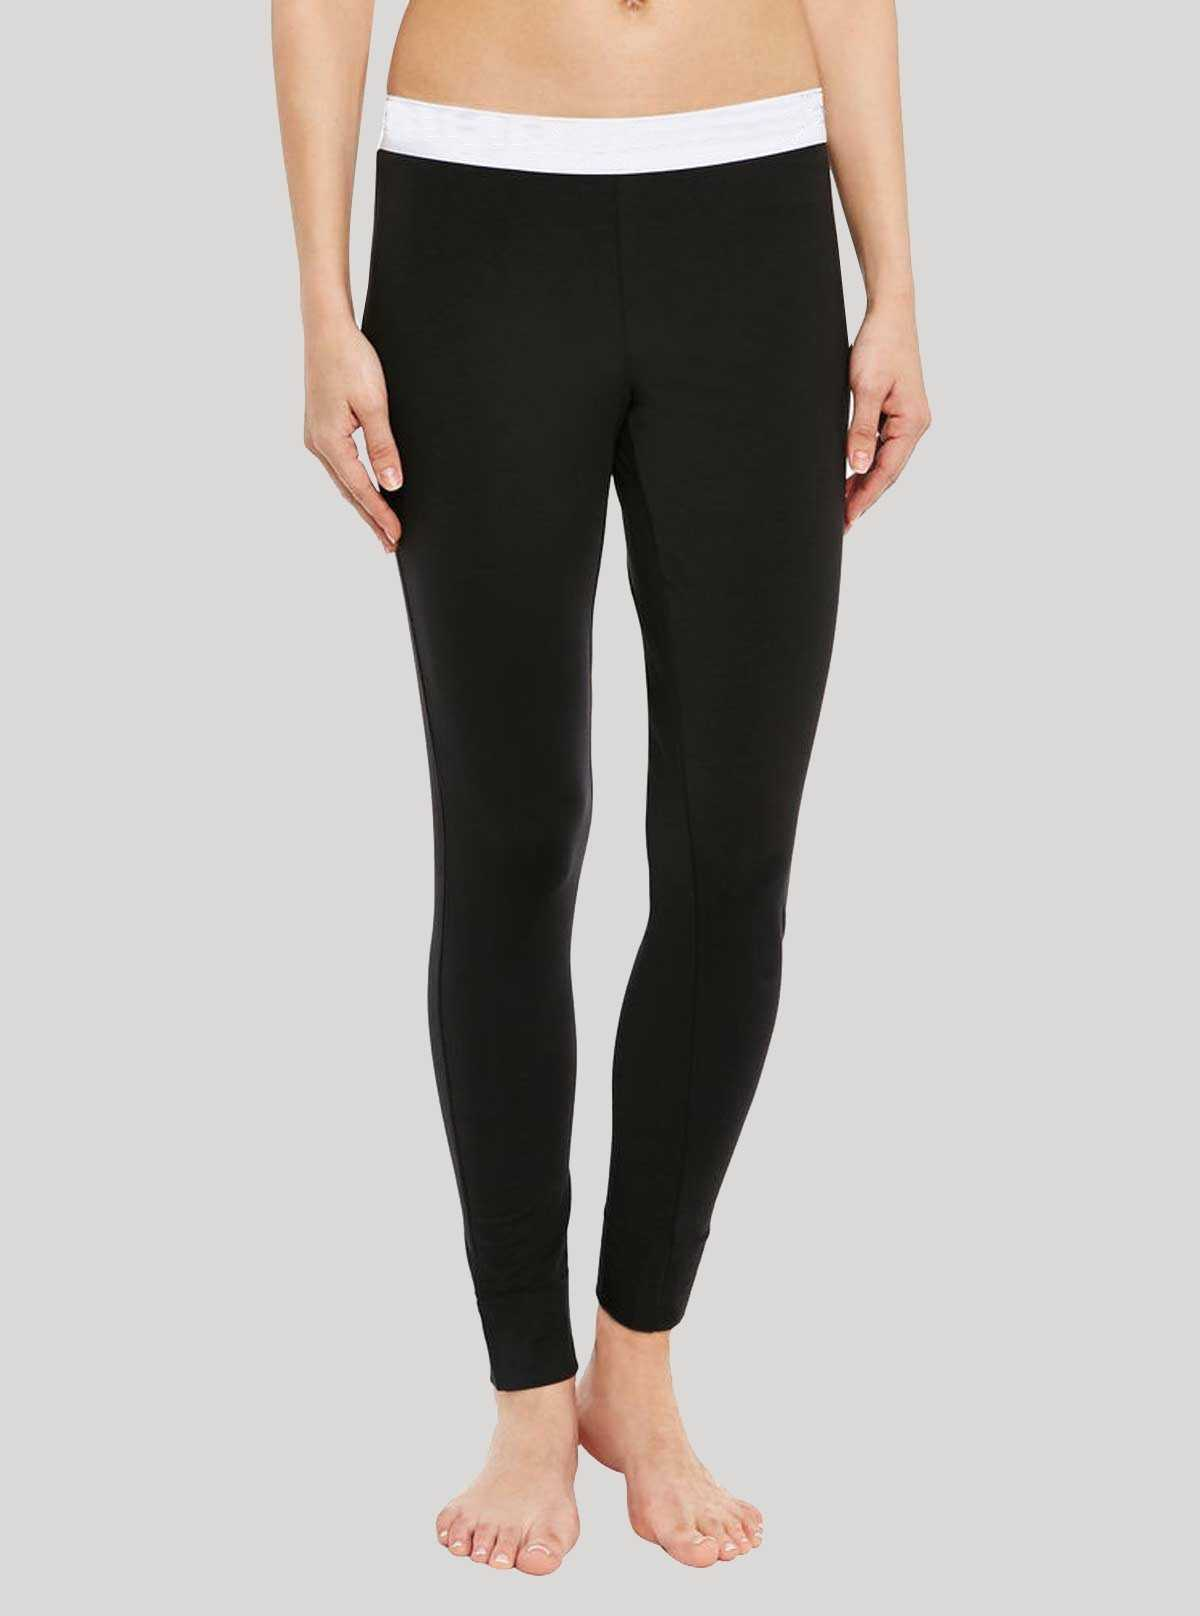 Black PJ Bottom Pant Boer and Fitch - 1